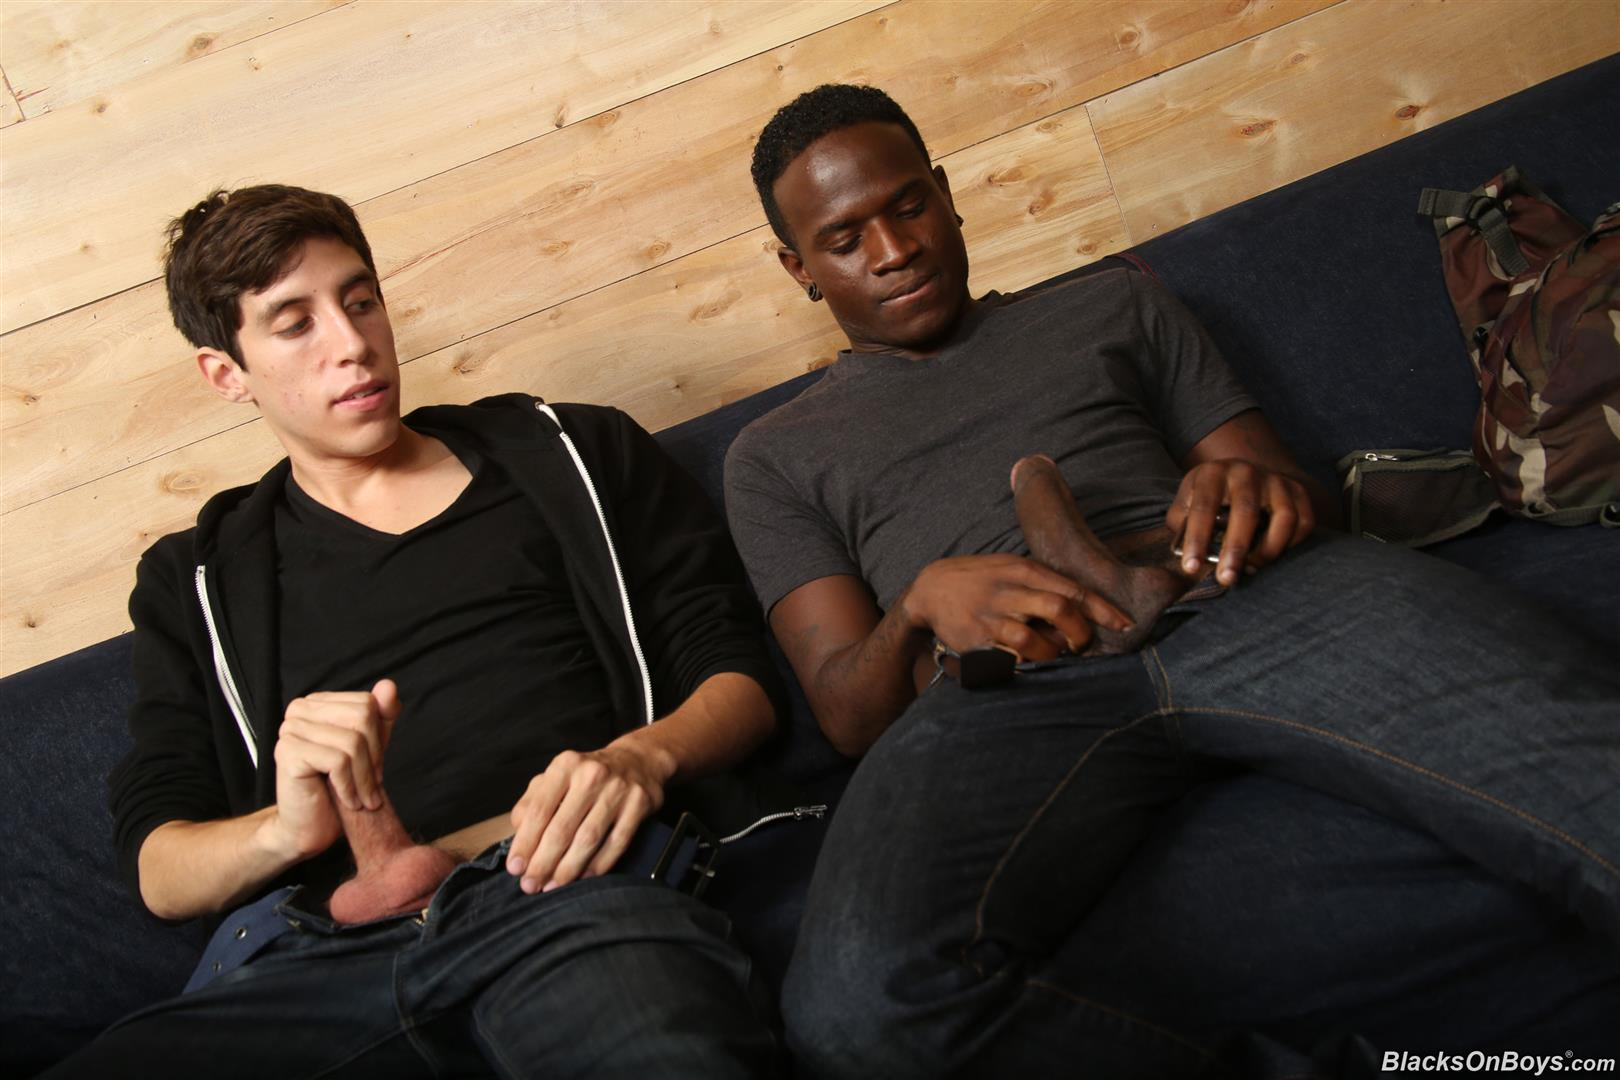 Blacks On Boys Billy Eastmore and Tyko Interracial Gay Fucking Amateur Gay Porn 03 Amateur College Dude Takes His First Big Black Cock Up The Ass